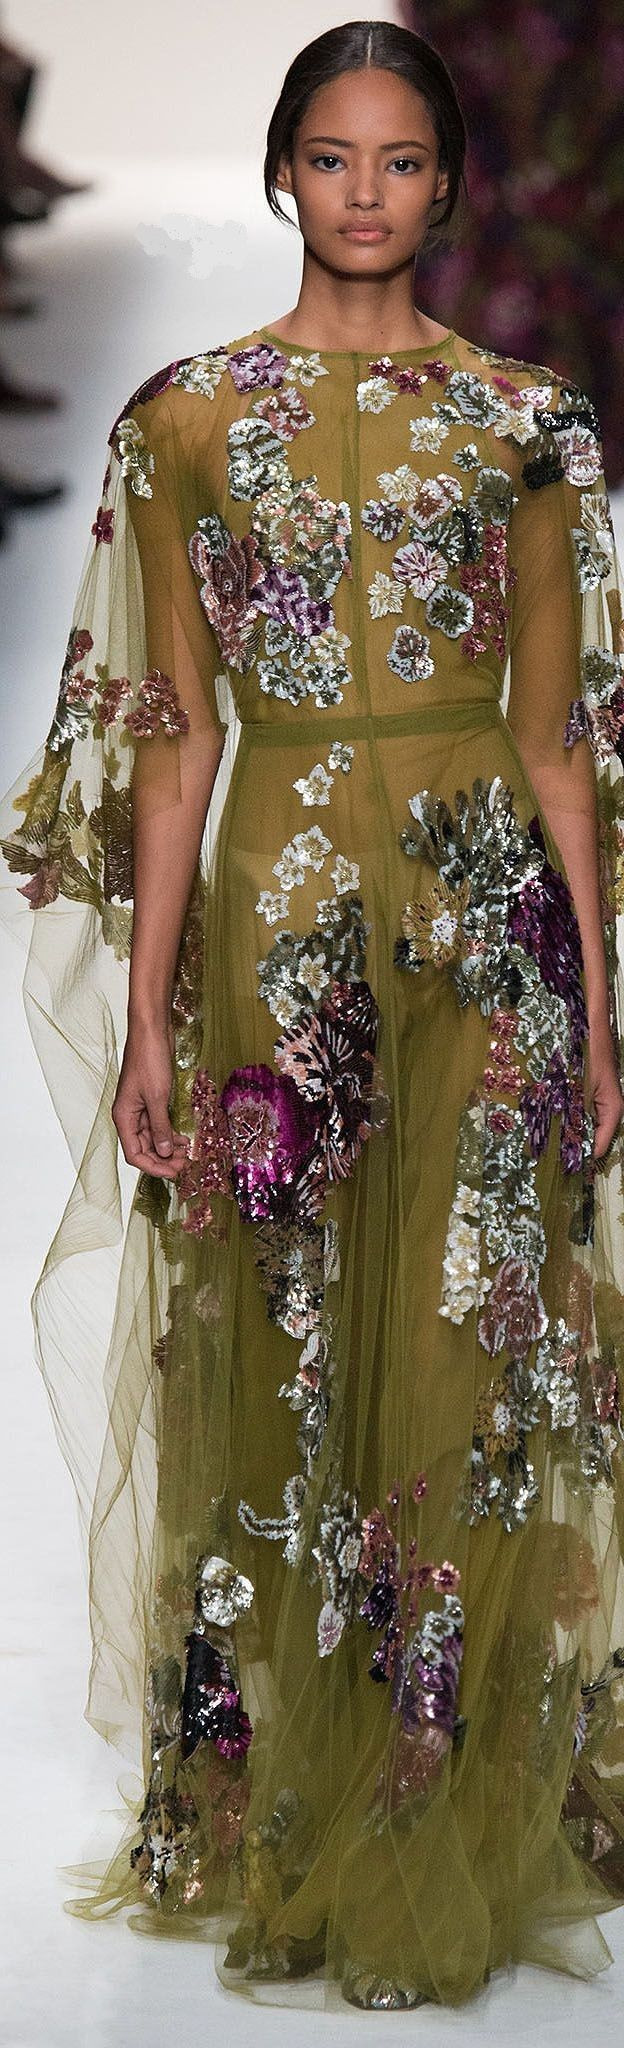 Valentino Autumn/Winter 2014 Ready-To-Wear show report